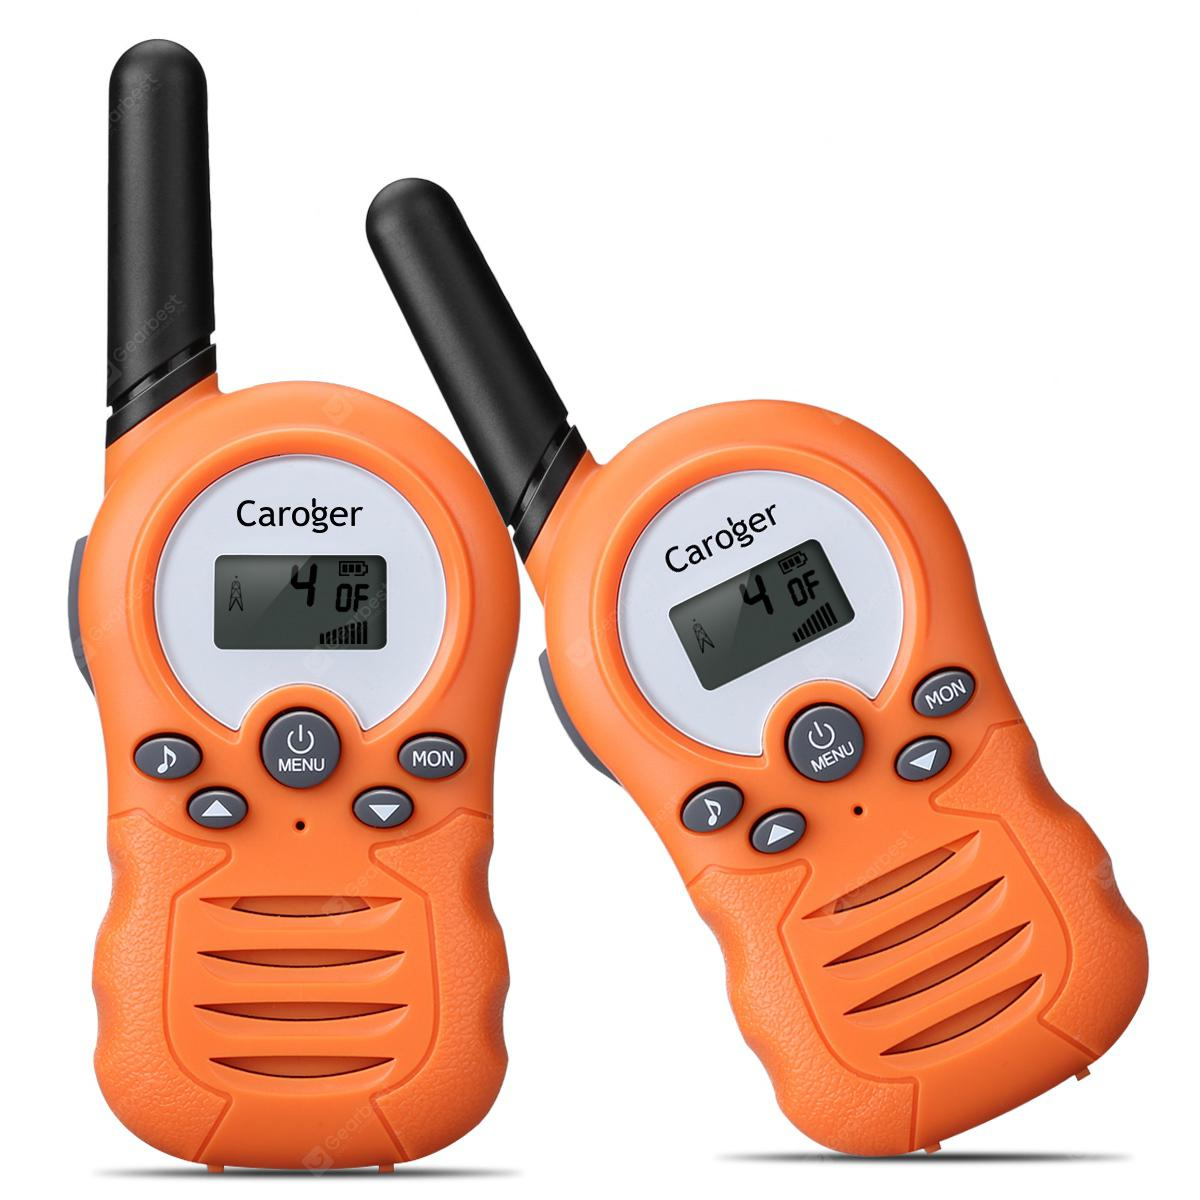 Cargo CR388A License-Free 22 Channel? 2packs? Walkie Talkies FRS / GMRS 462 / 467MHZ Two Way Radio Up to 3300 Meters / 2 Miles Range Handheld Interphone Orange - PAPAYA ORANGE